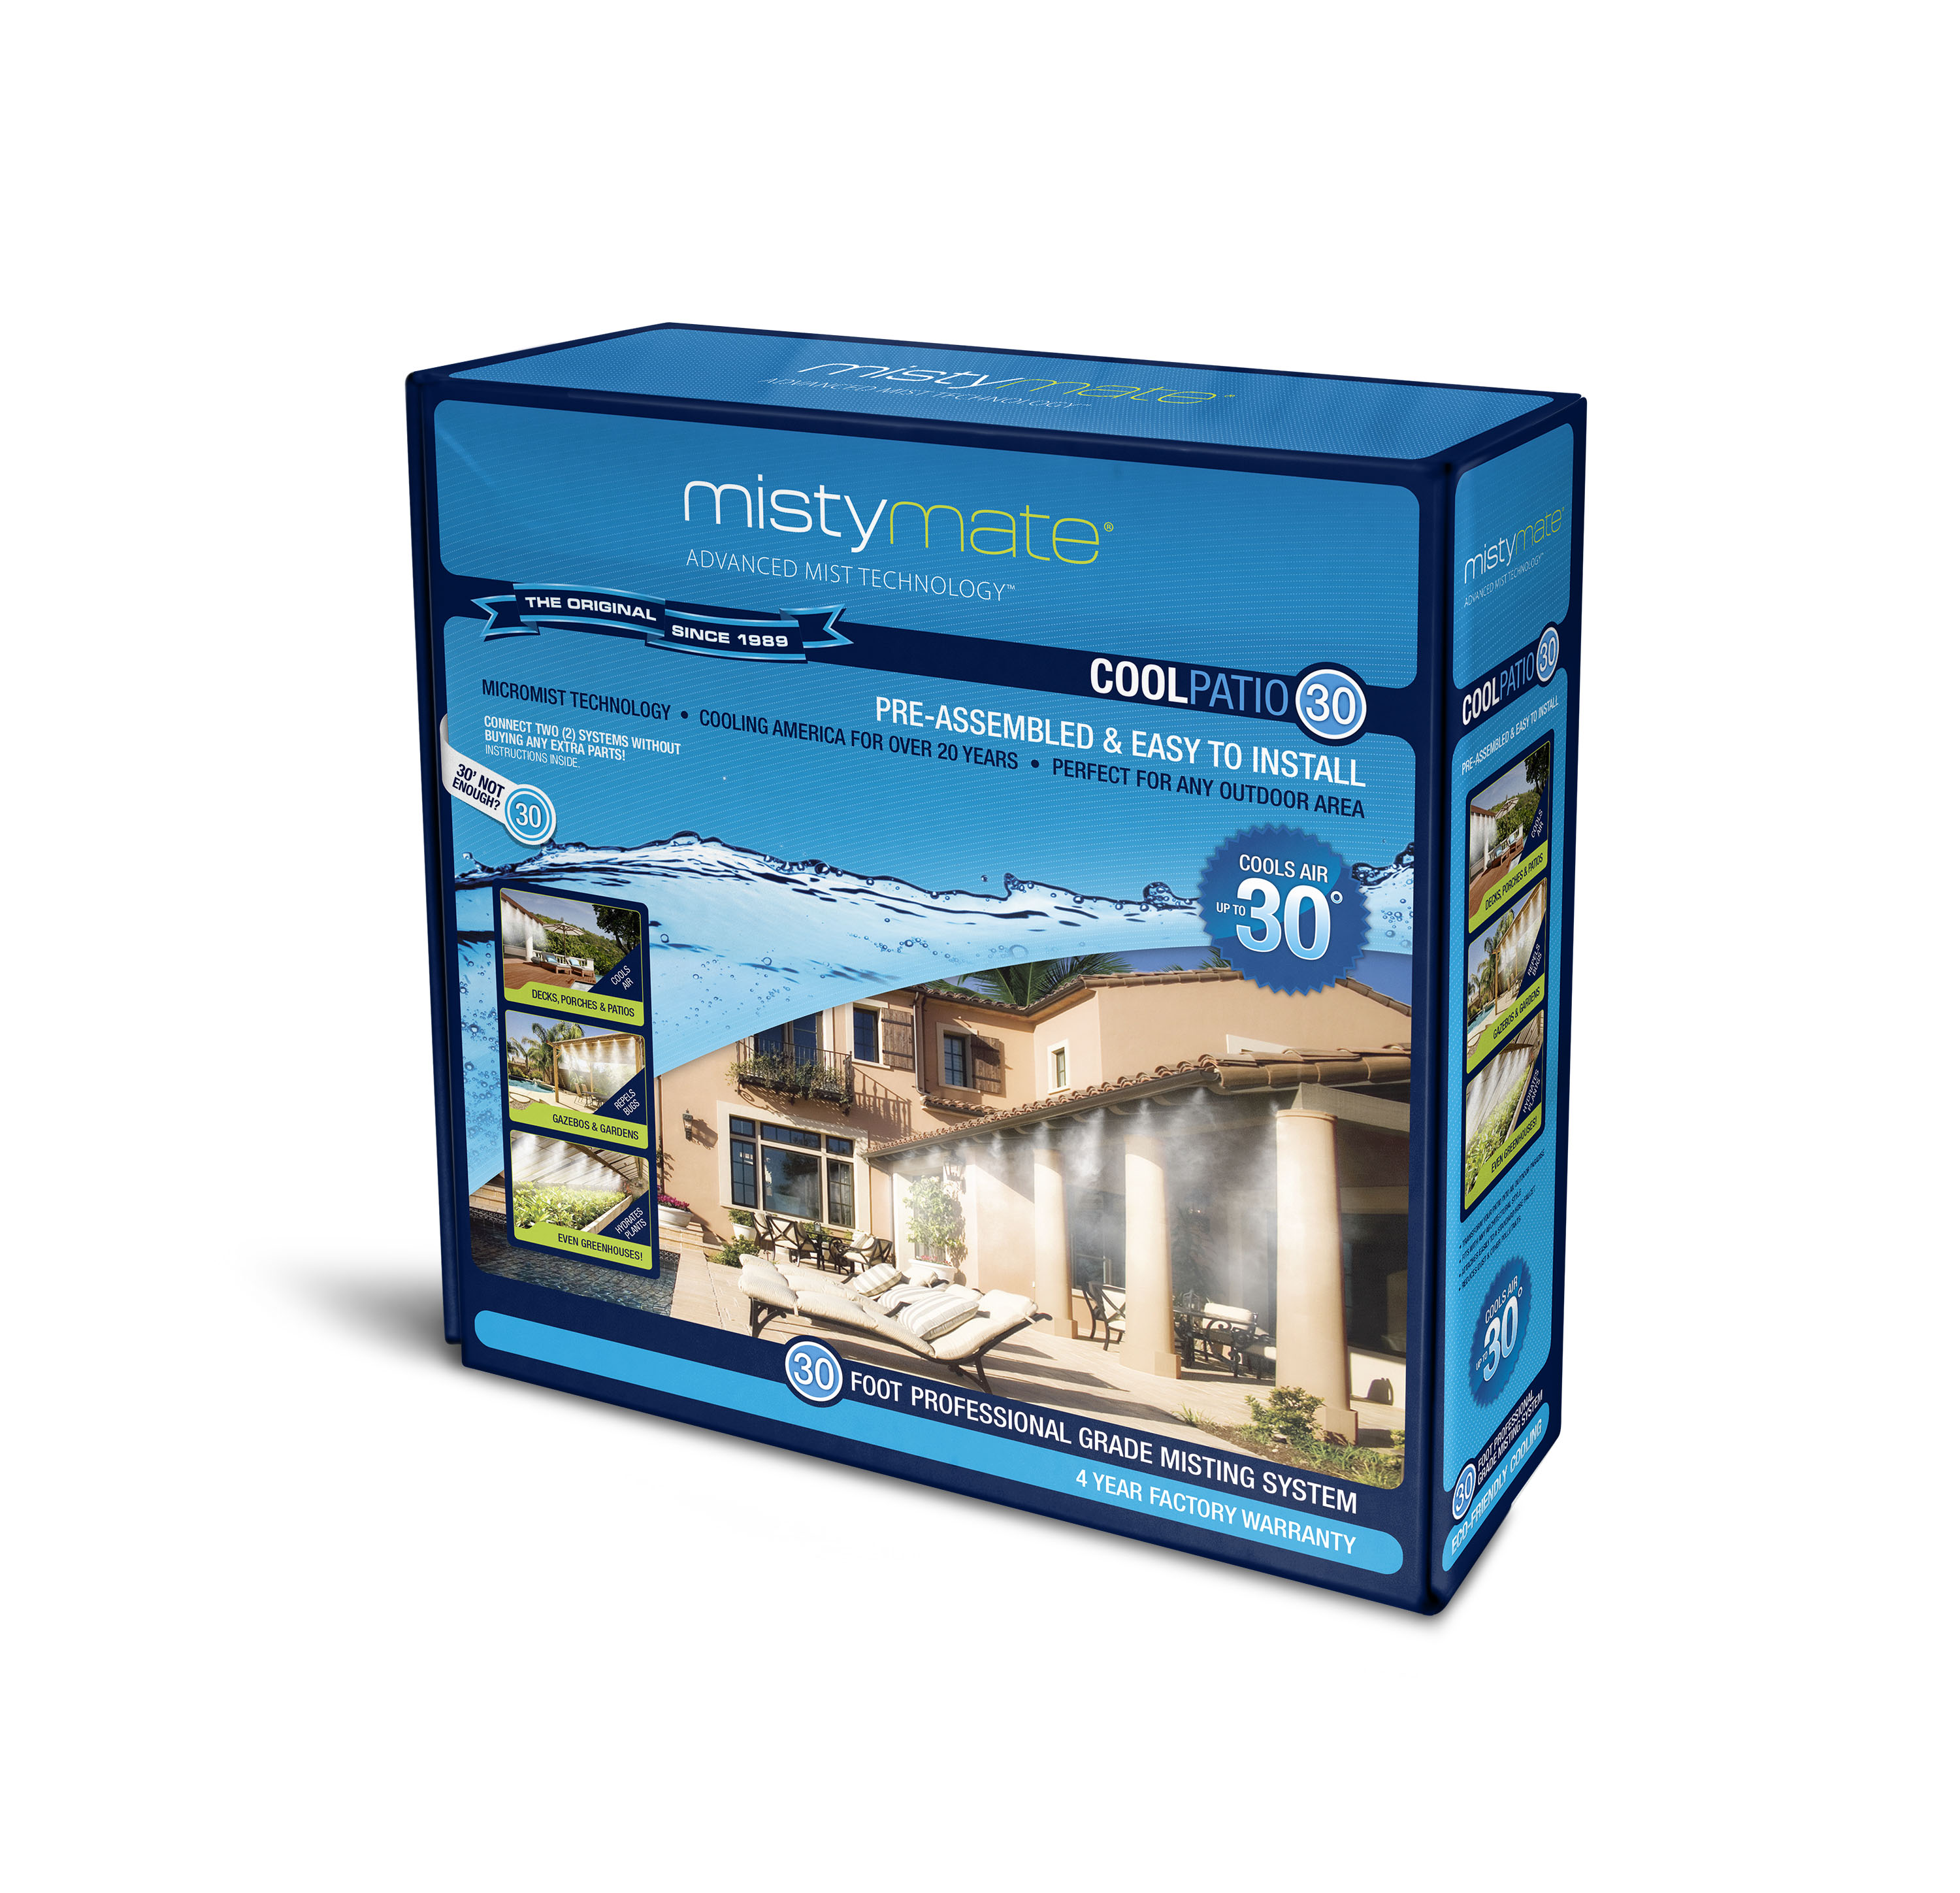 MistyMate 16 030 30' Cool Patio 30 Outdoor Misting System